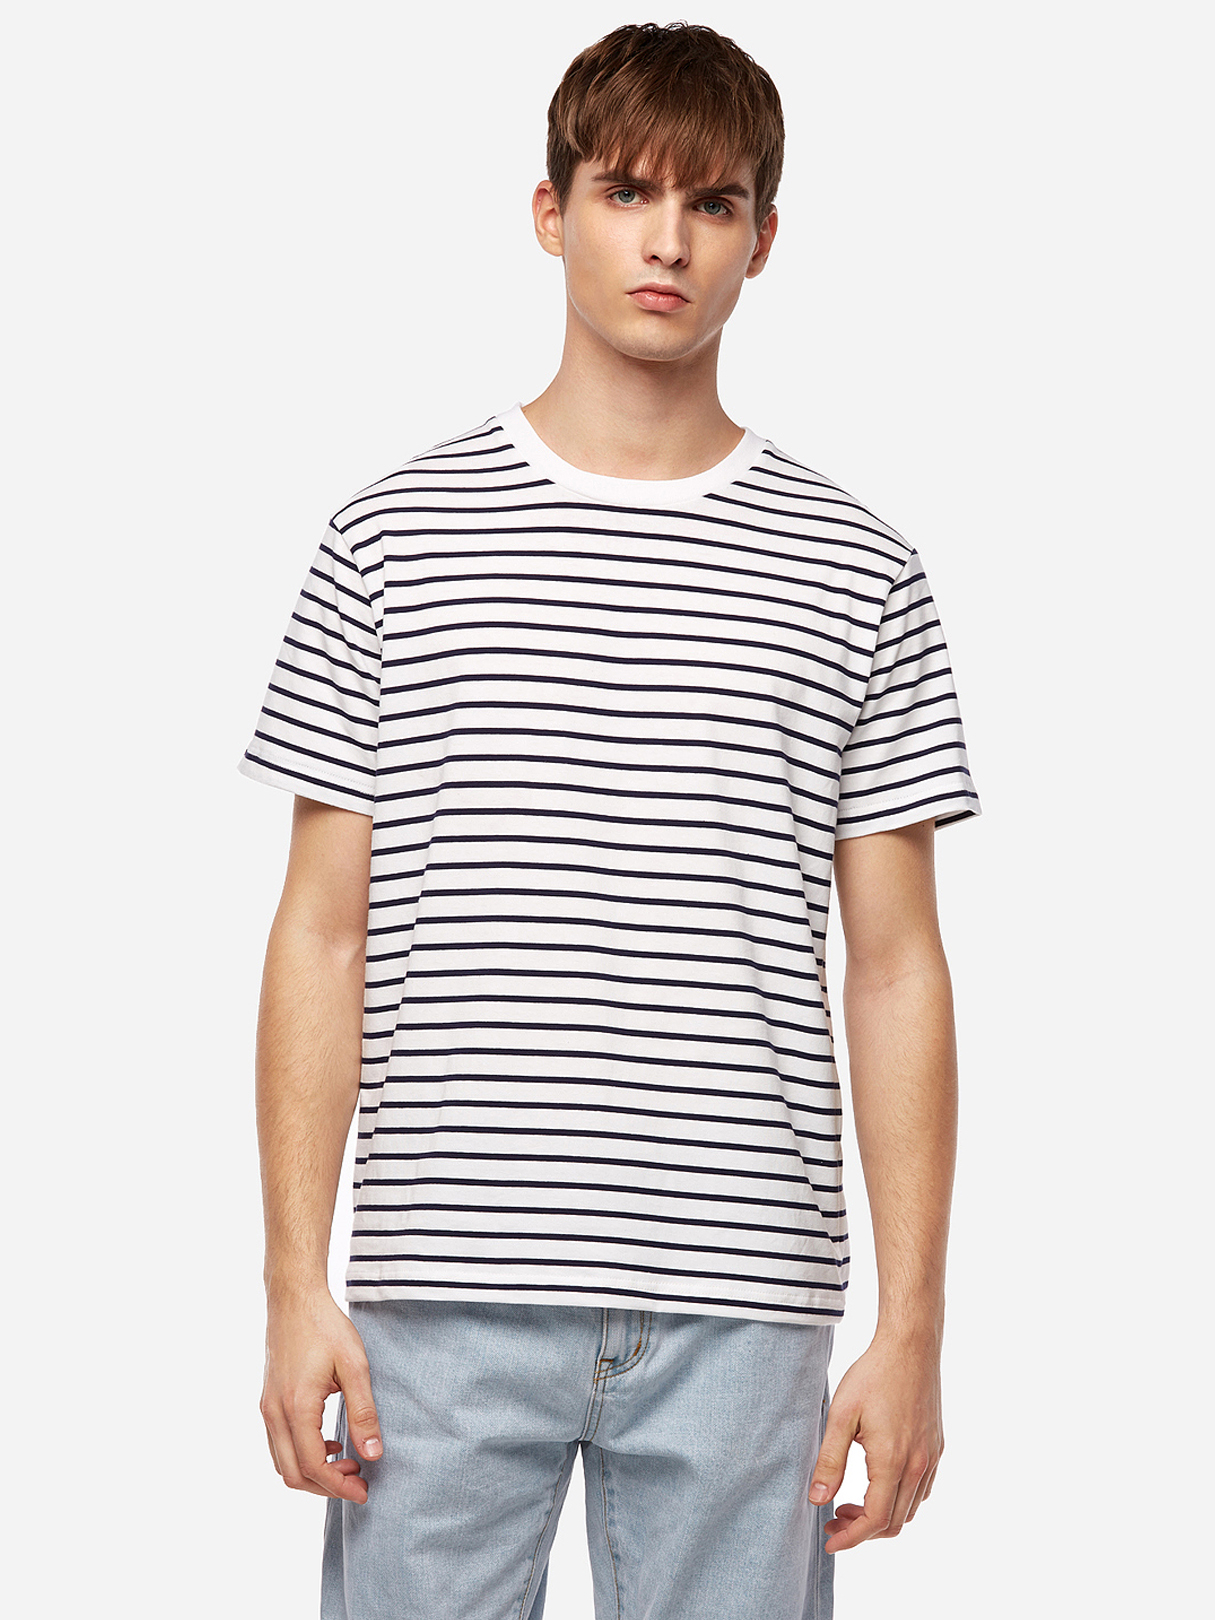 White Striped Daily Life Round Neck Short Sleeve Men's T-Shirt daily life chemistry